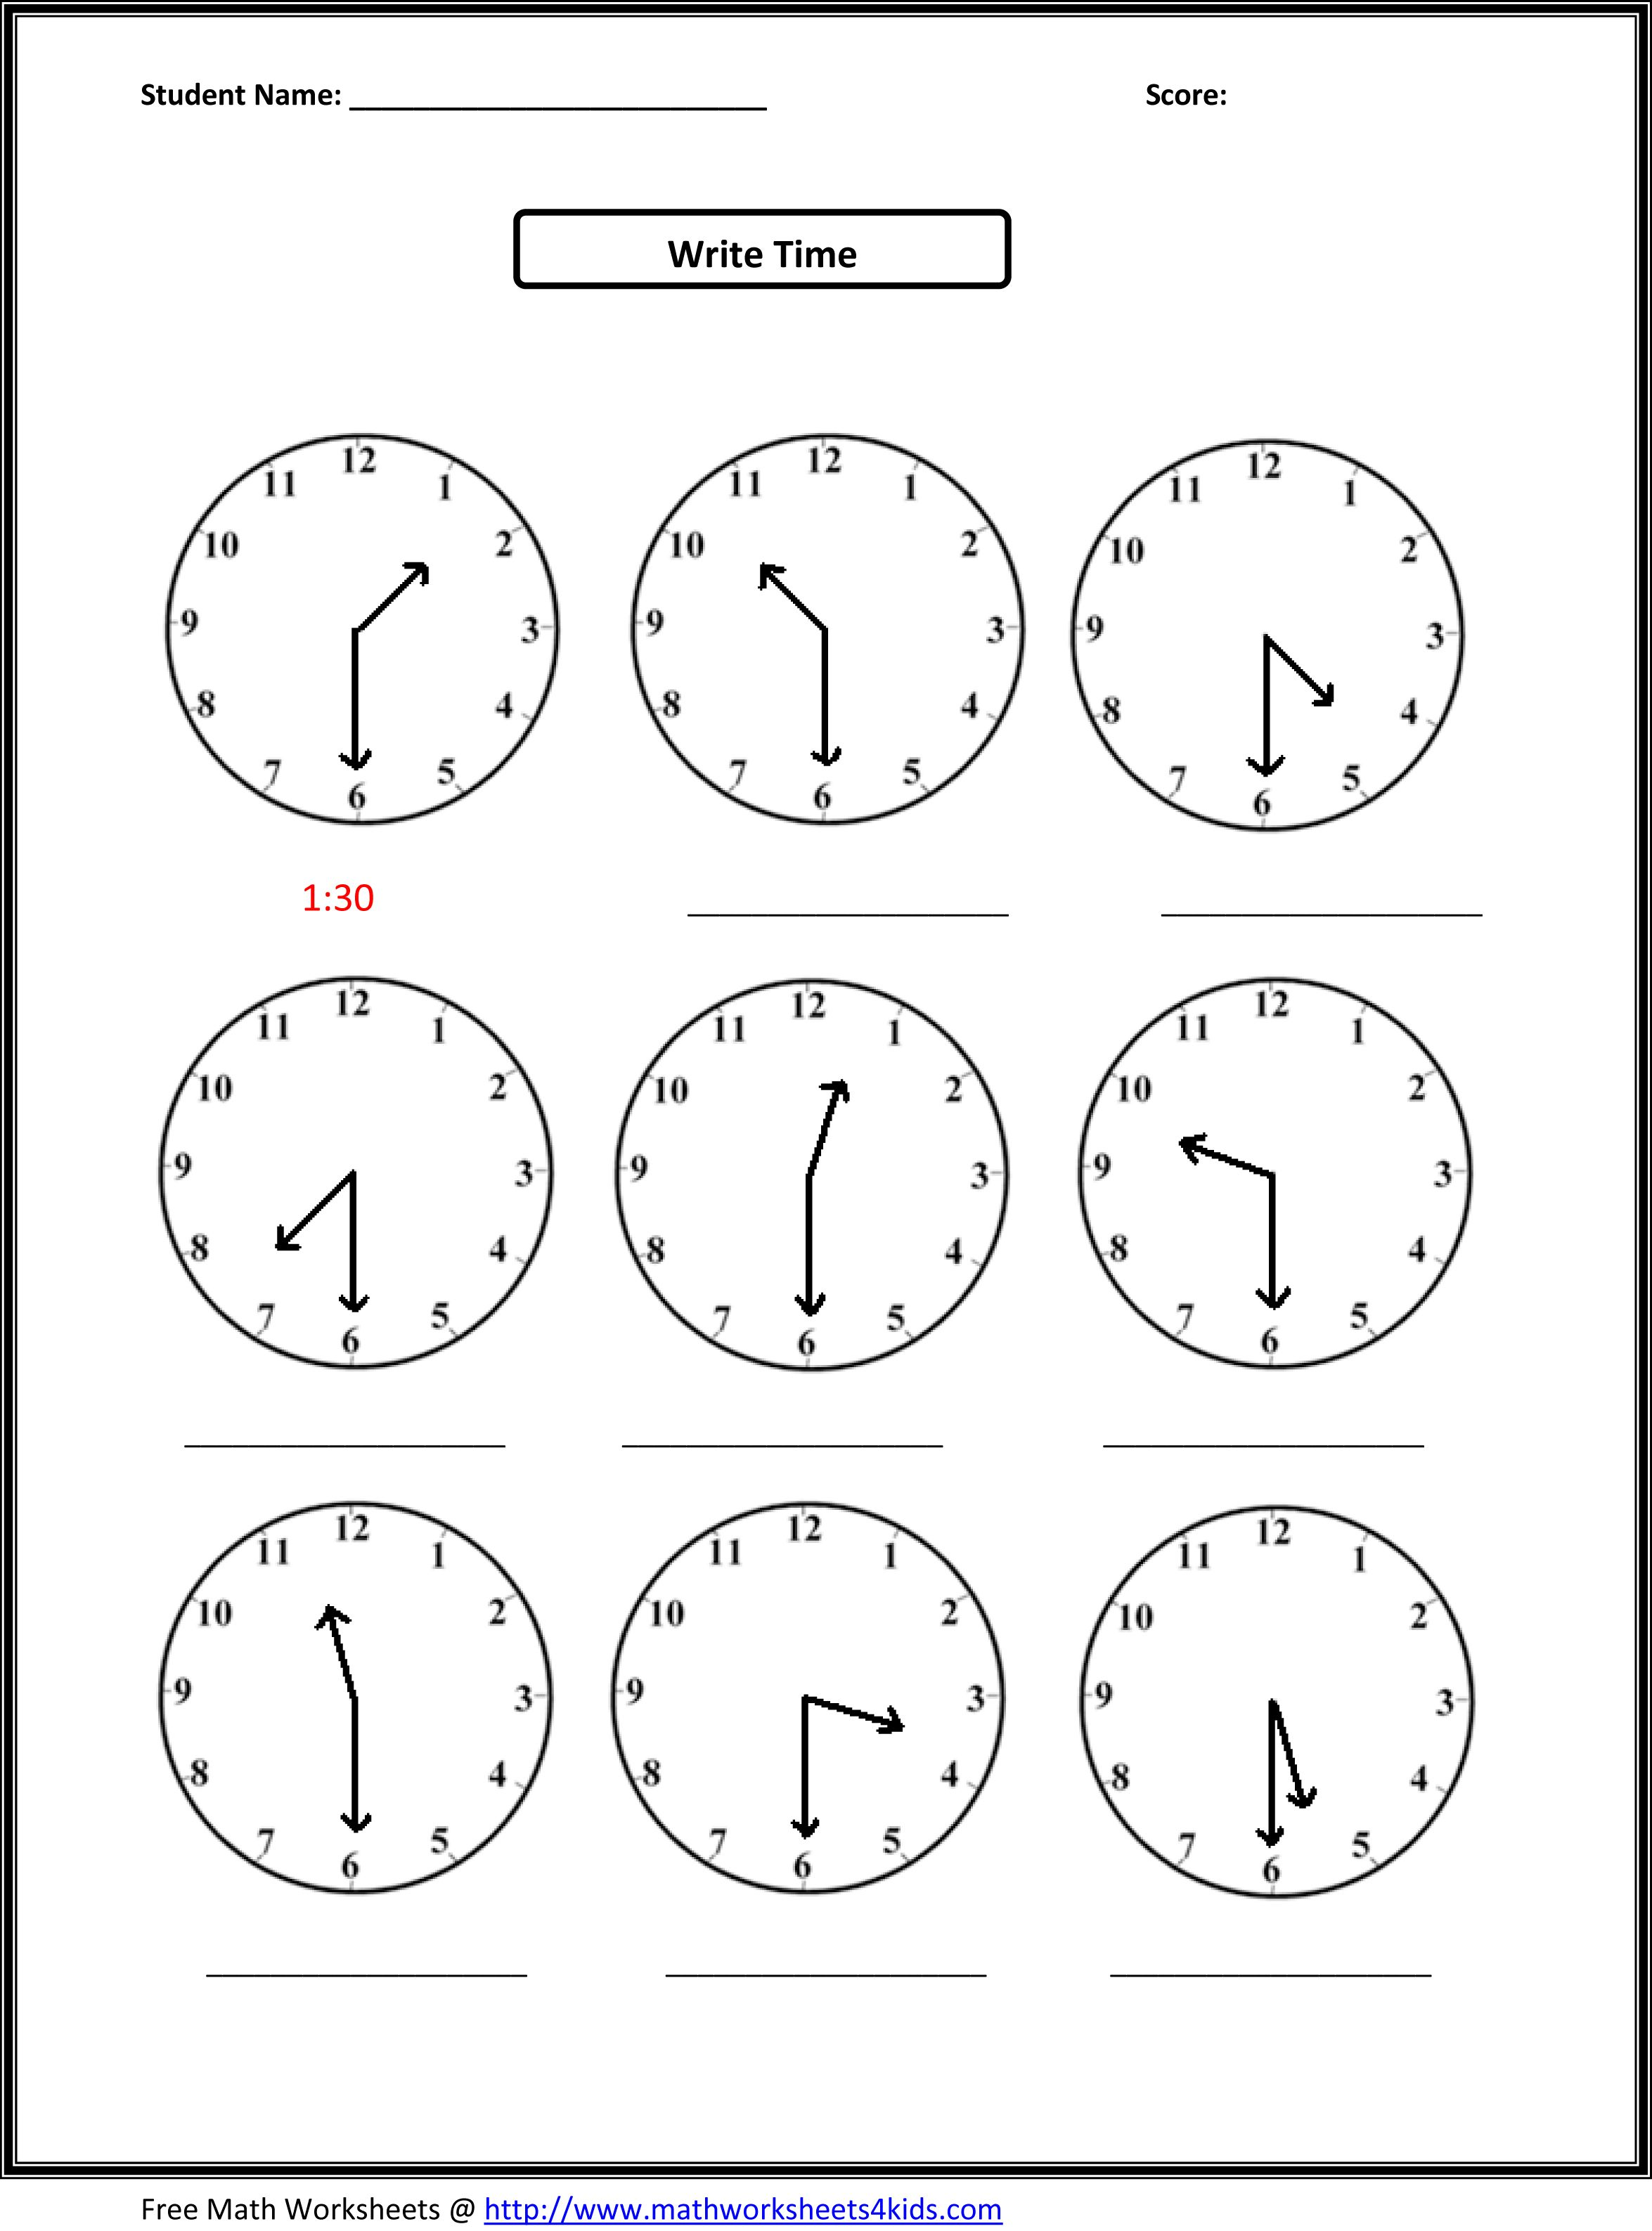 Weirdmailus  Marvelous Worksheet On Time For Grade   Reocurent With Exquisite Free Printable Telling Time Worksheets Nd Grade  Reocurent With Adorable Free Preschool Printable Worksheets Also Free Printable First Grade Math Worksheets In Addition Goal Setting Worksheet Pdf And Prime And Composite Numbers Worksheet As Well As System Of Linear Equations Worksheet Additionally Conversion Worksheet From Reocurentcom With Weirdmailus  Exquisite Worksheet On Time For Grade   Reocurent With Adorable Free Printable Telling Time Worksheets Nd Grade  Reocurent And Marvelous Free Preschool Printable Worksheets Also Free Printable First Grade Math Worksheets In Addition Goal Setting Worksheet Pdf From Reocurentcom